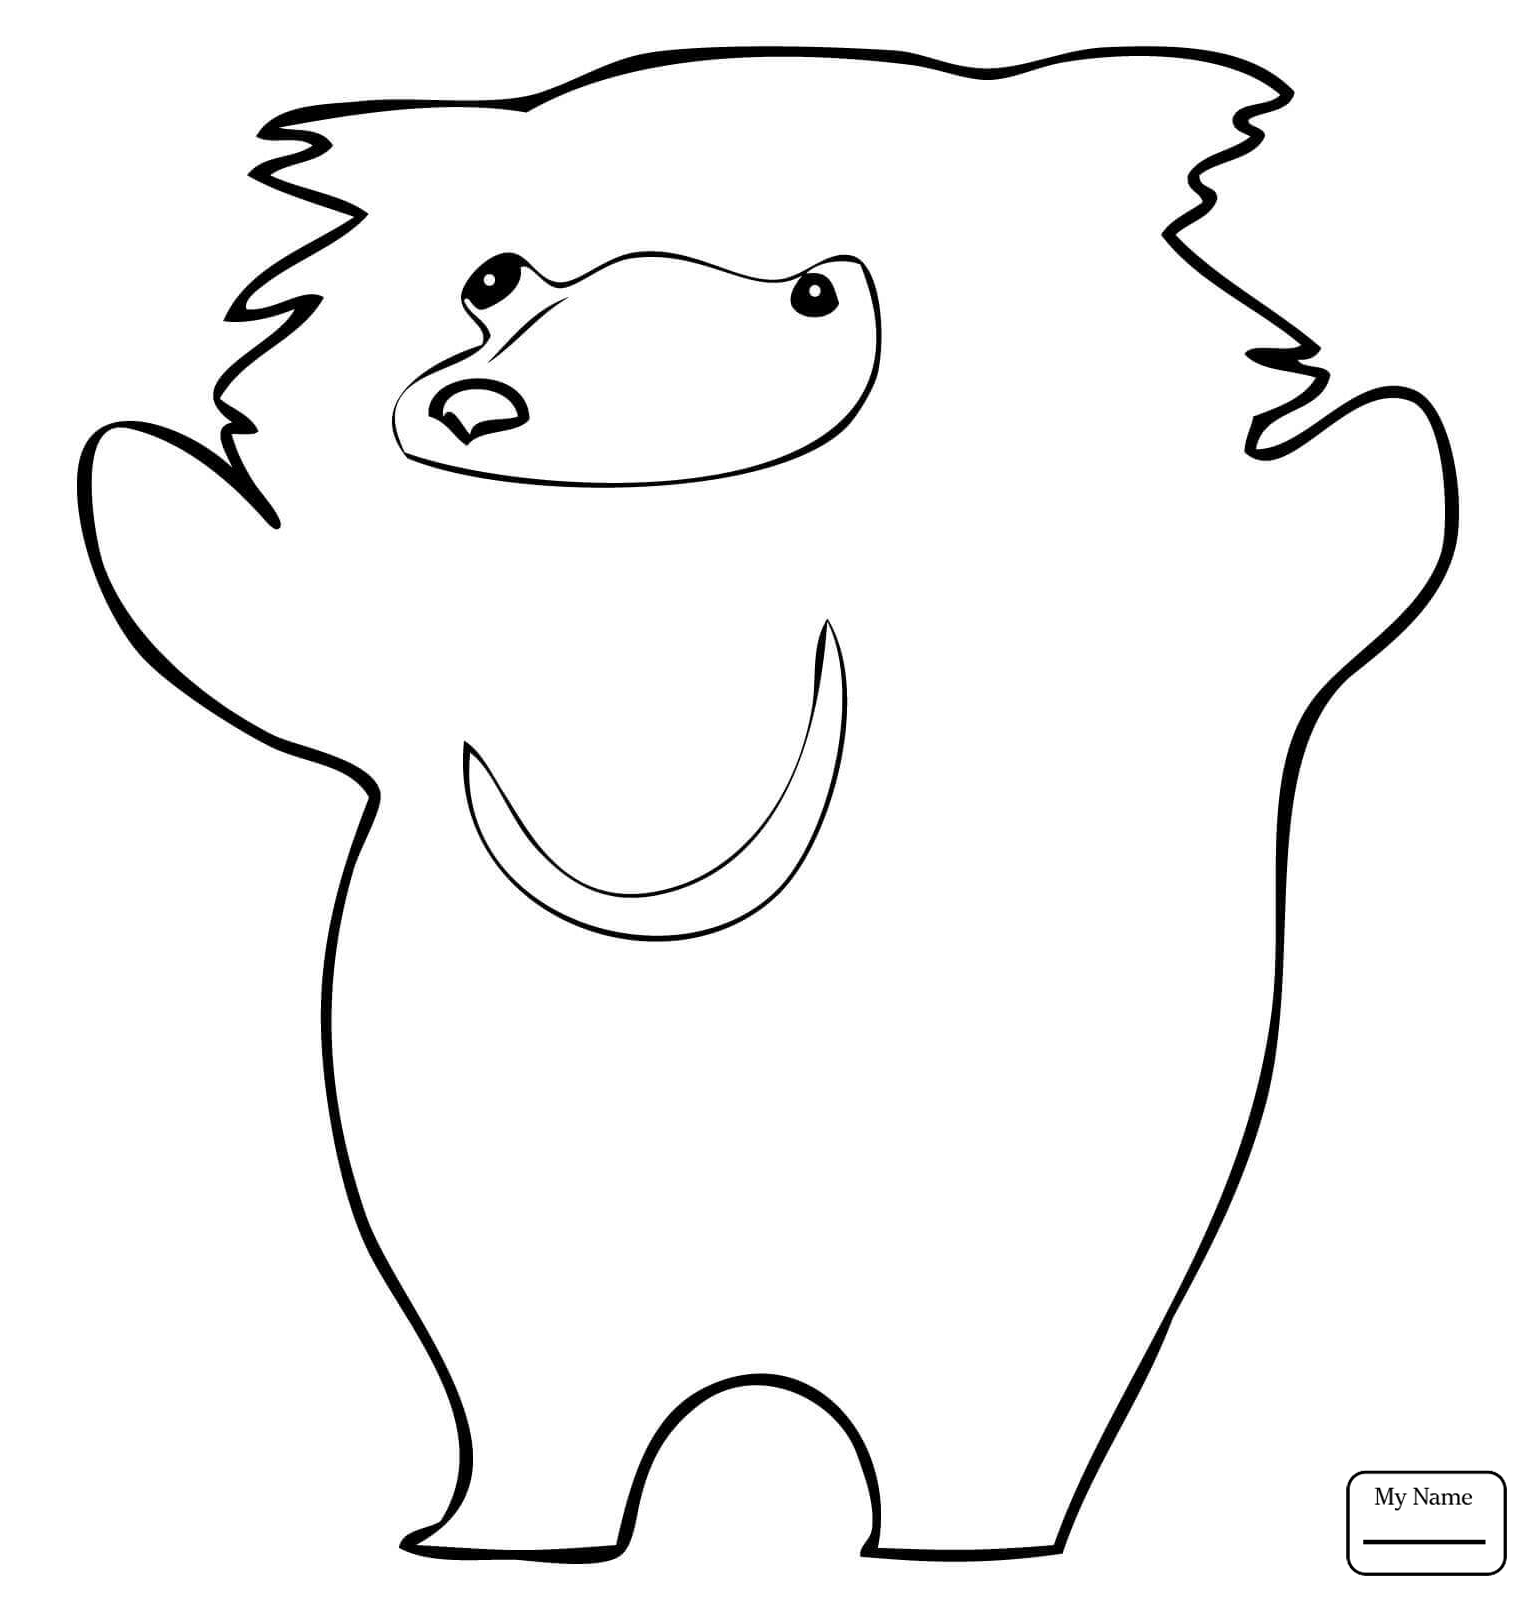 Sloth Drawing Easy at GetDrawings.com | Free for personal use Sloth ...